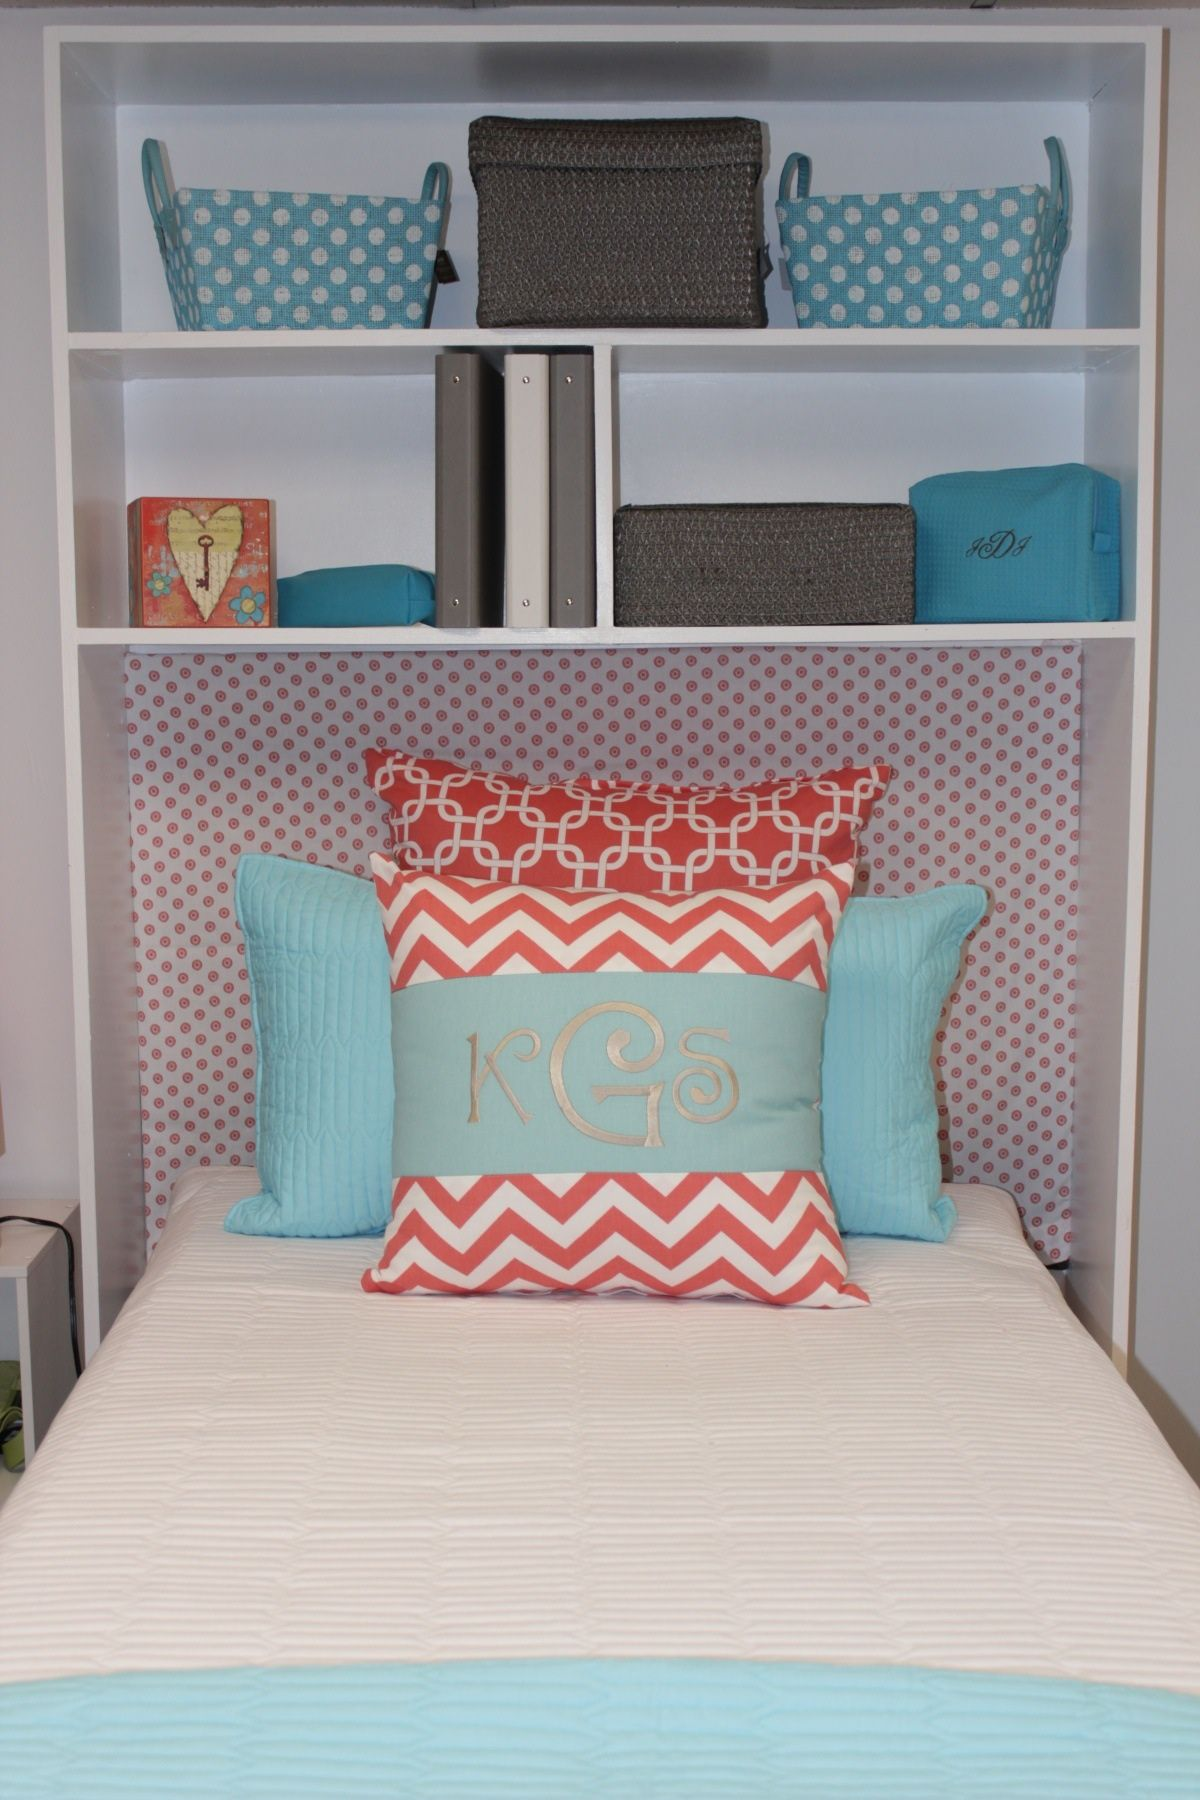 Add Shelves Behind Your Bed For More Organization   Doing The Dorm